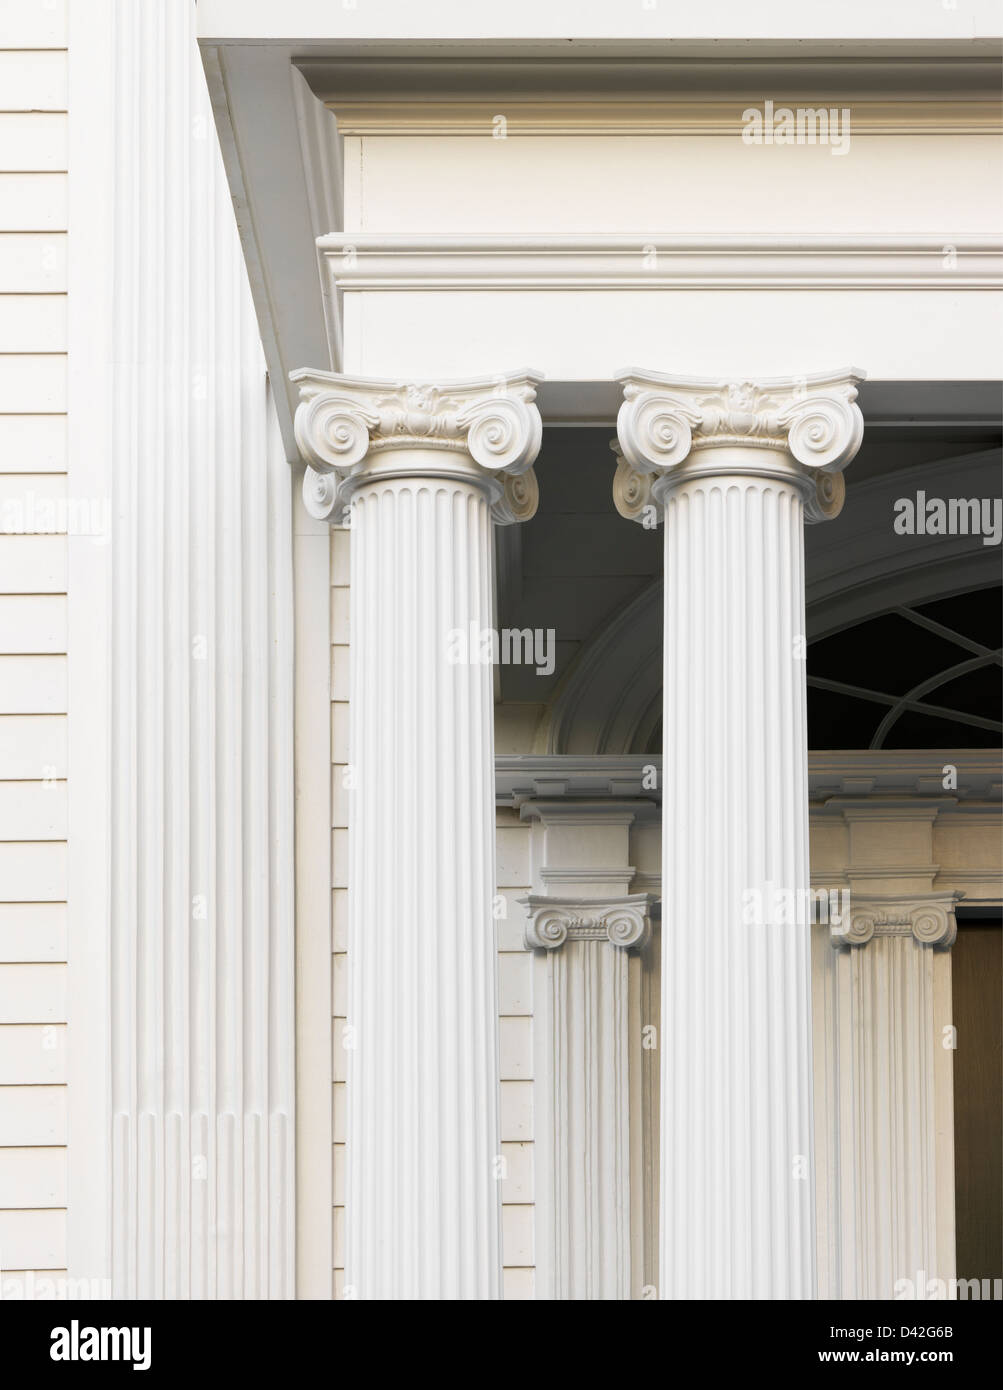 detail of ionic column - Stock Image